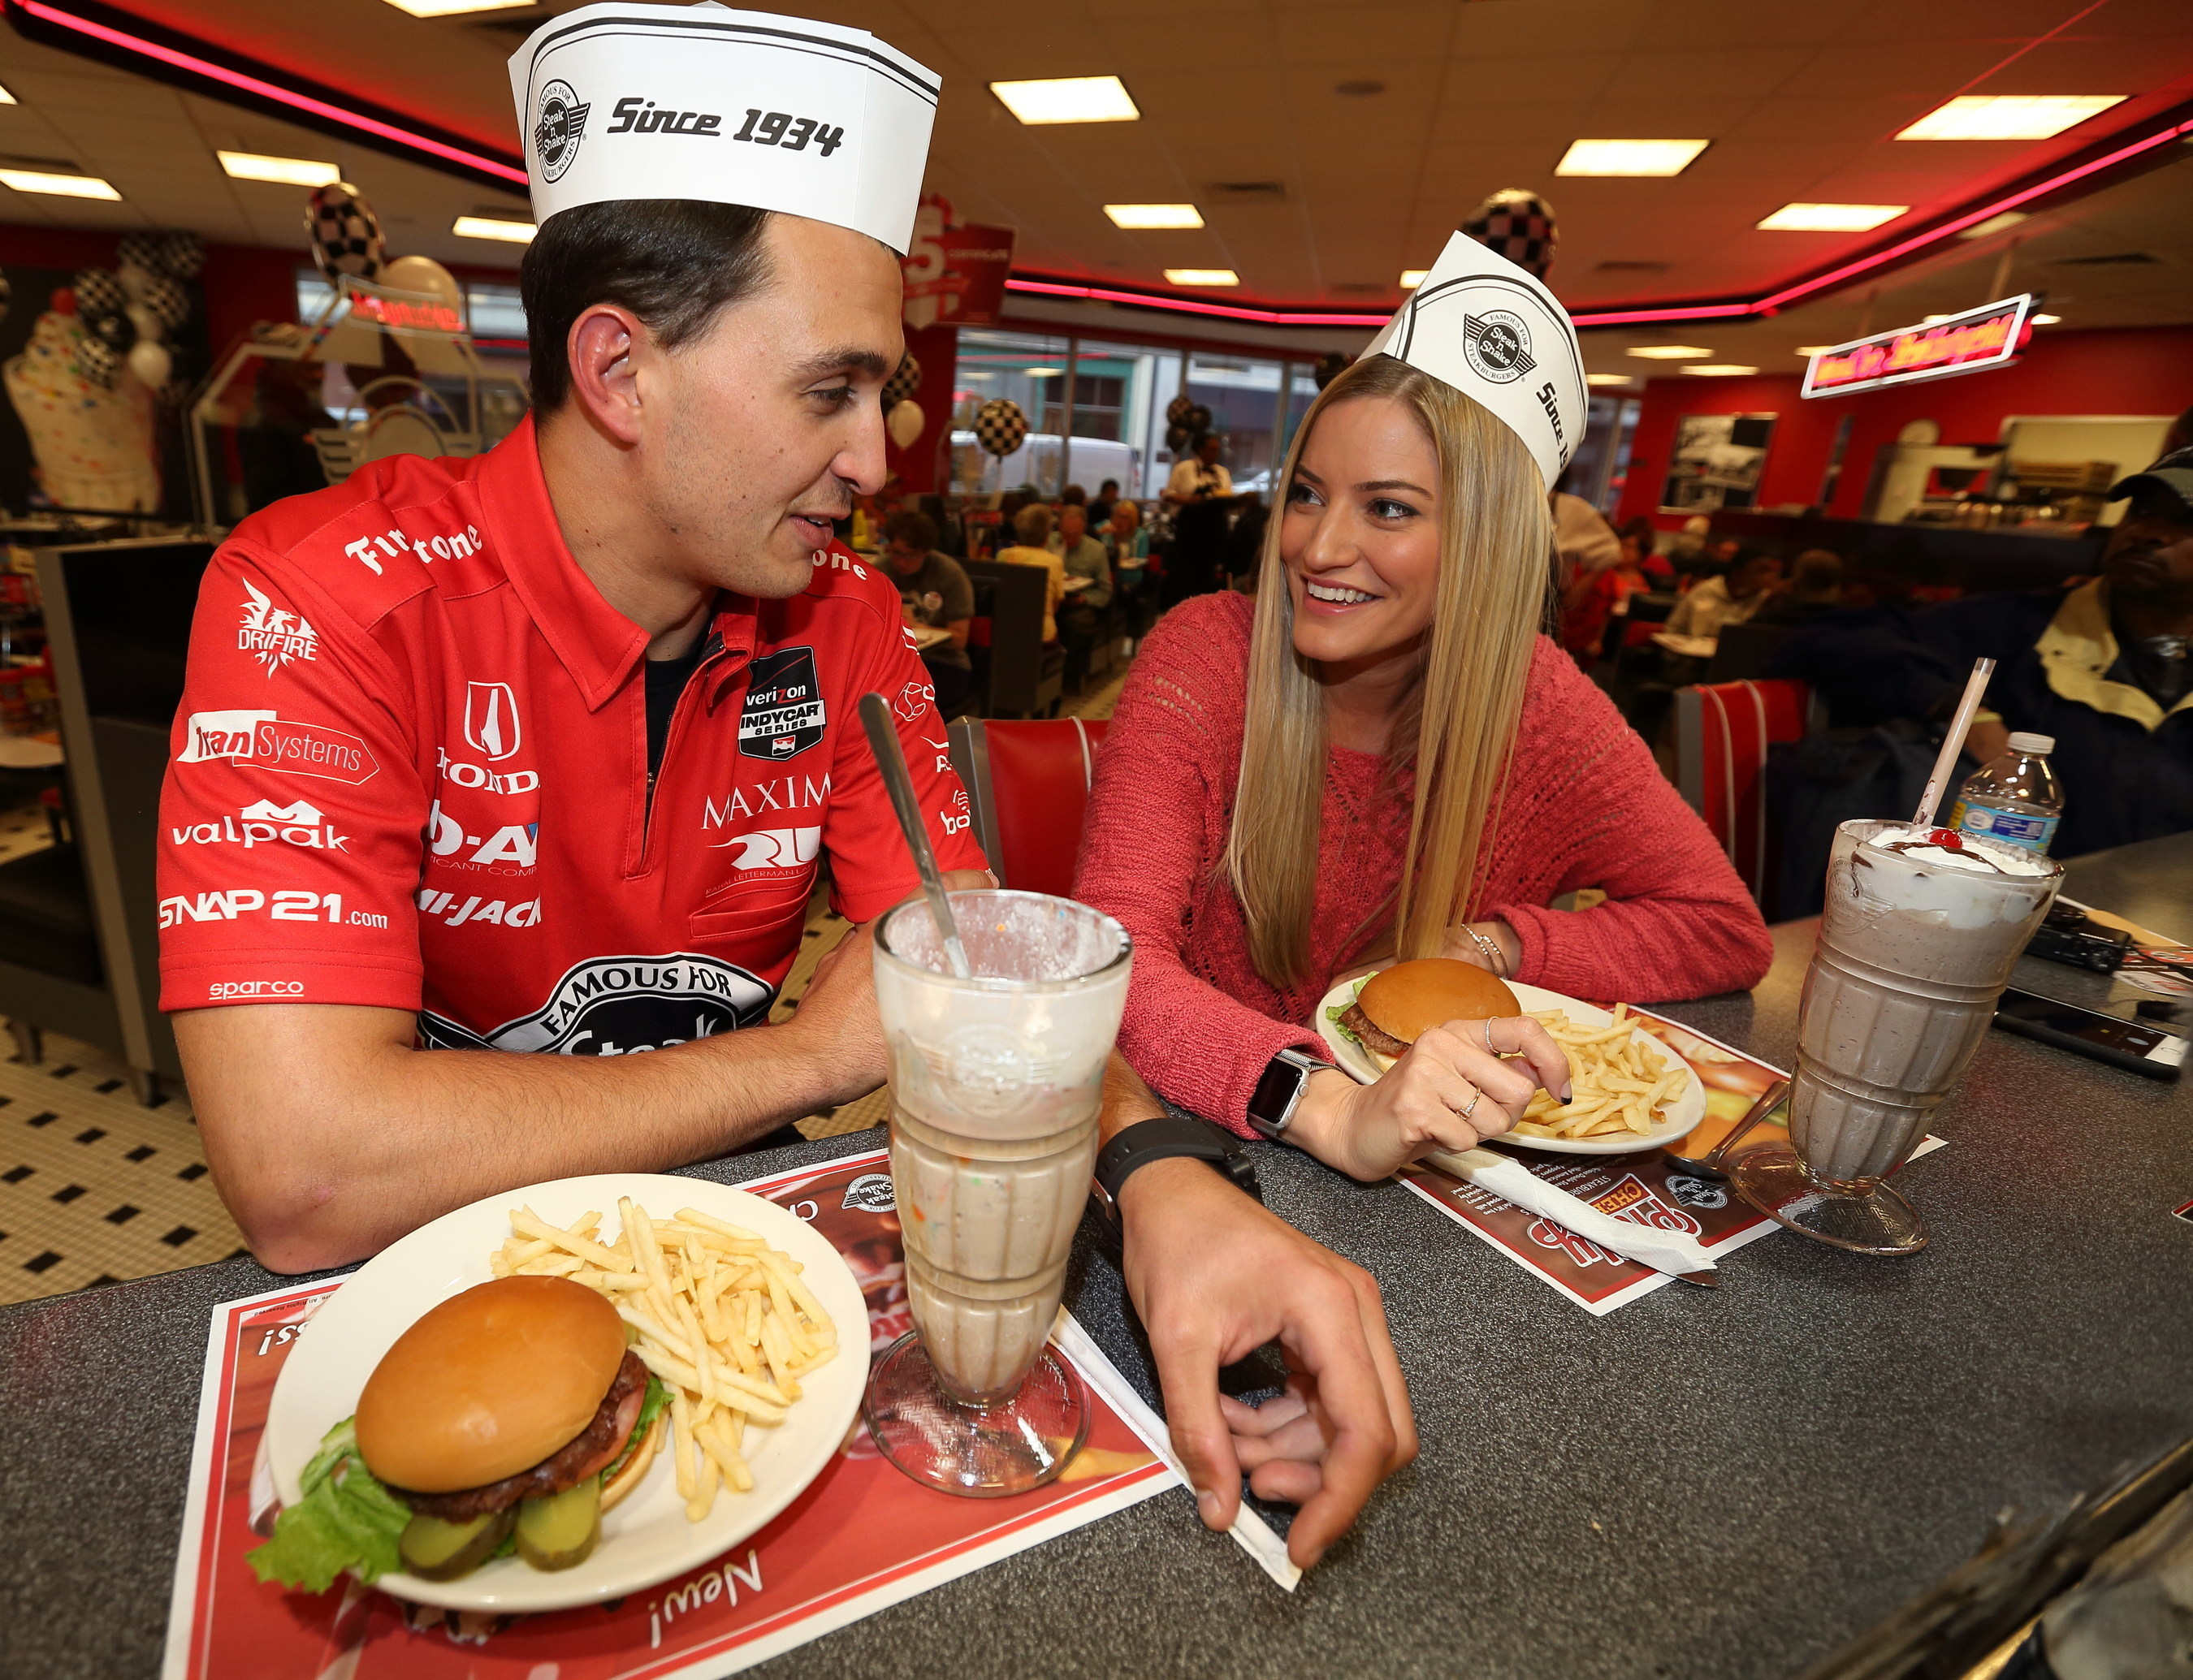 Graham Rahal, the No. 15 Steak 'n Shake Indy car driver and YouTube star iJustine enjoy milkshakes and take selfies together at an Indy 500 fan event held at the downtown Steak 'n Shake restaurant on May 21, 2015.